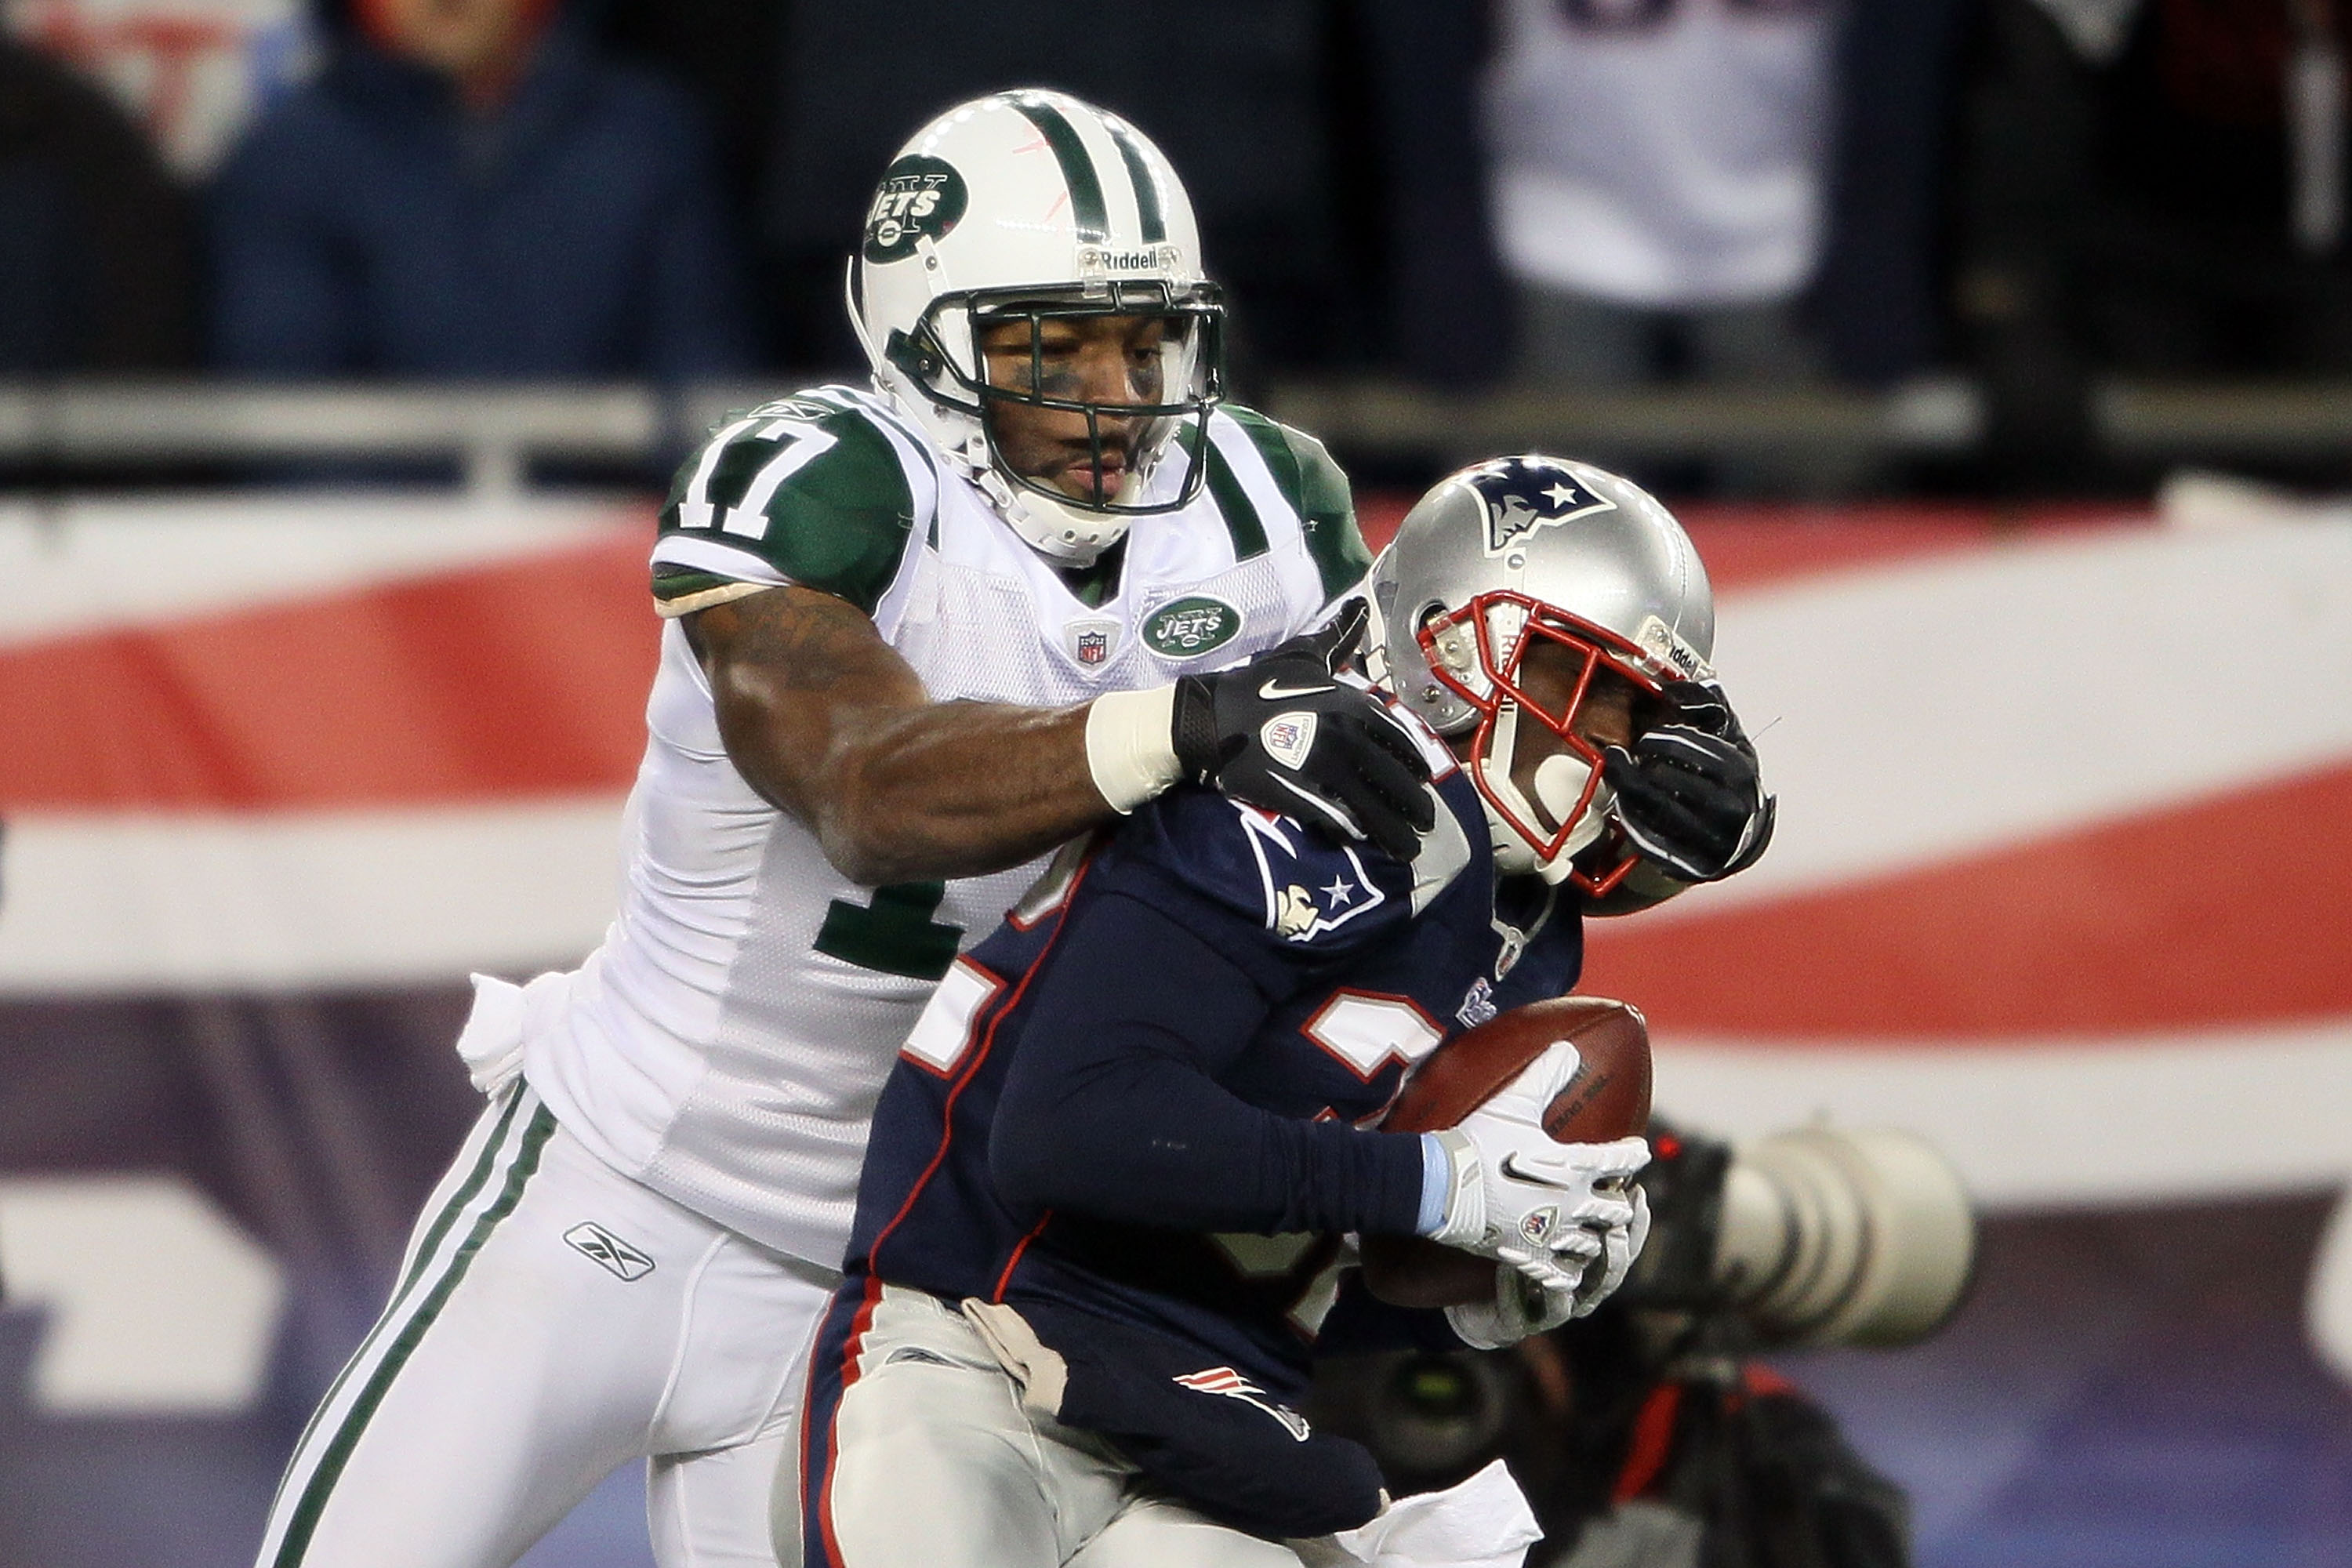 FOXBORO, MA - DECEMBER 06:  Devin McCourty #32 of the New England Patriots intercepts a pass against Braylon Edwards #17 of the New York Jets at Gillette Stadium on December 6, 2010 in Foxboro, Massachusetts. The Patriots won 45-3. (Photo by Elsa/Getty Im